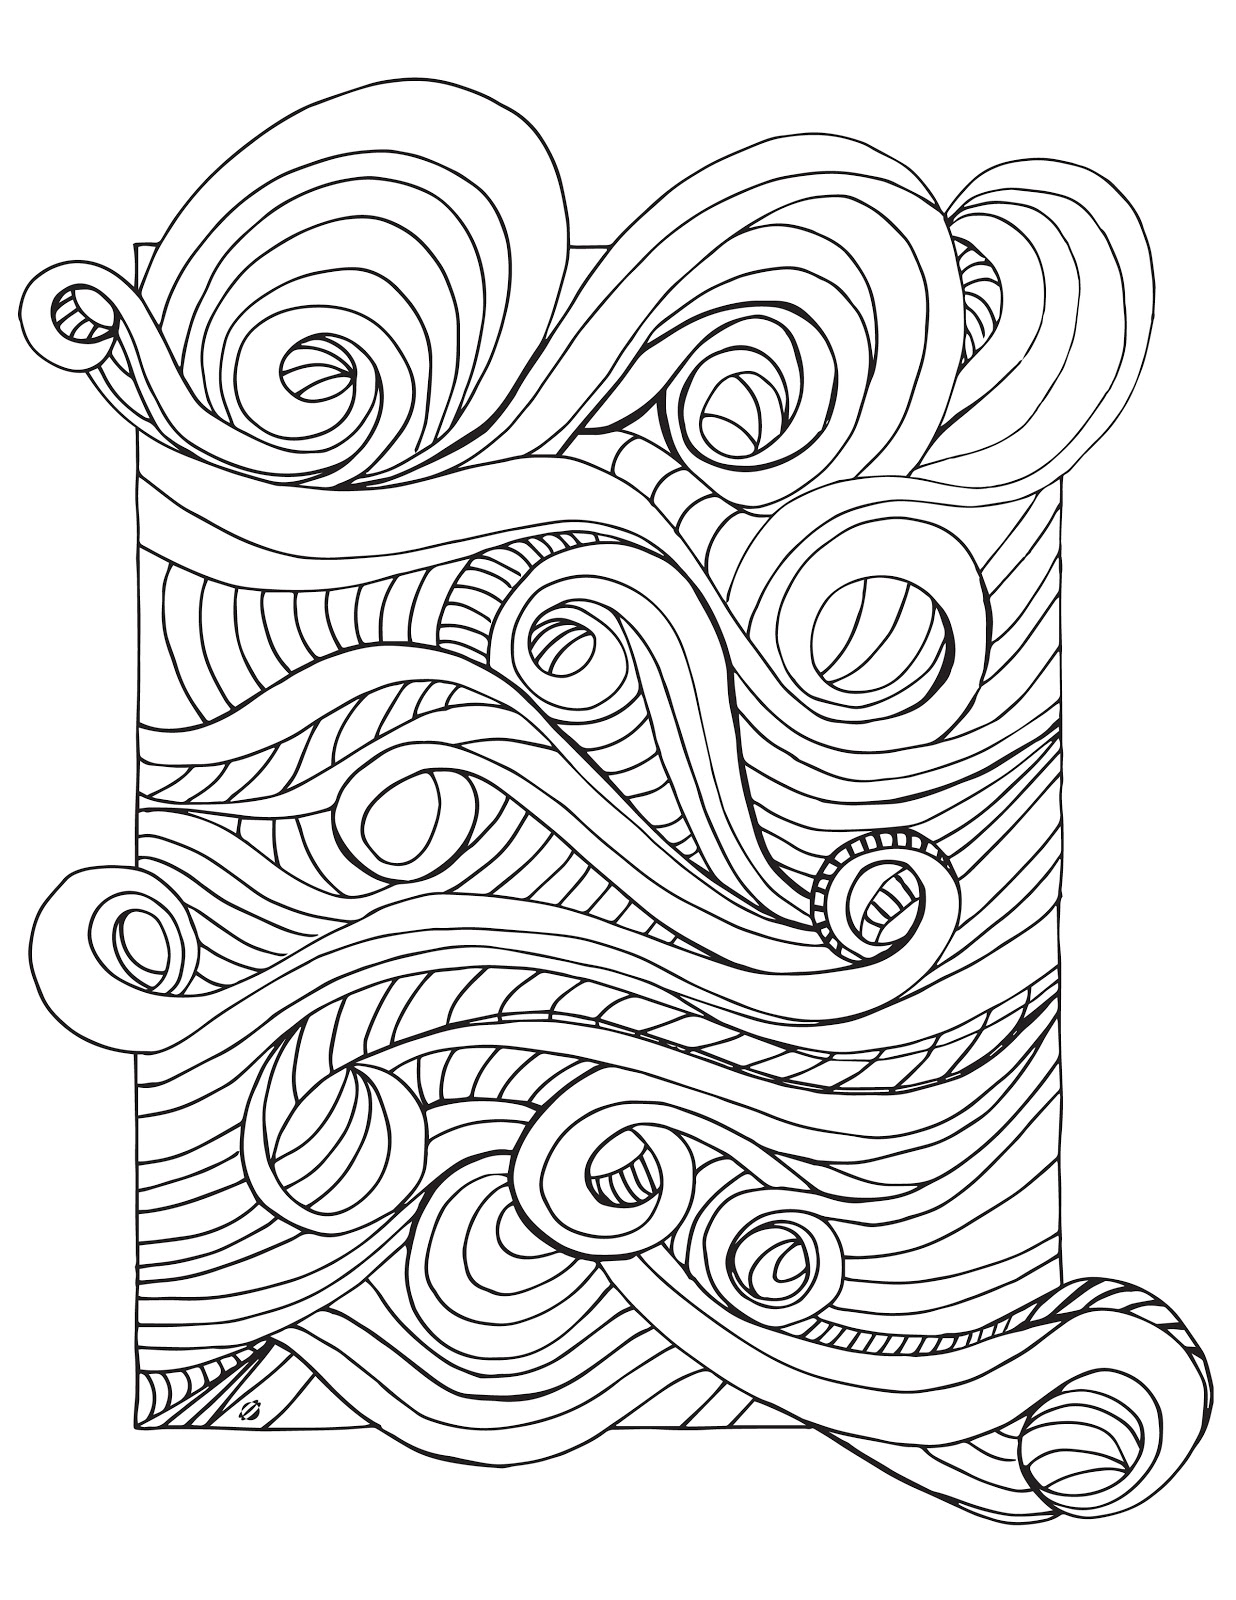 8 5 x 11 printable coloring pages - 8 5x11